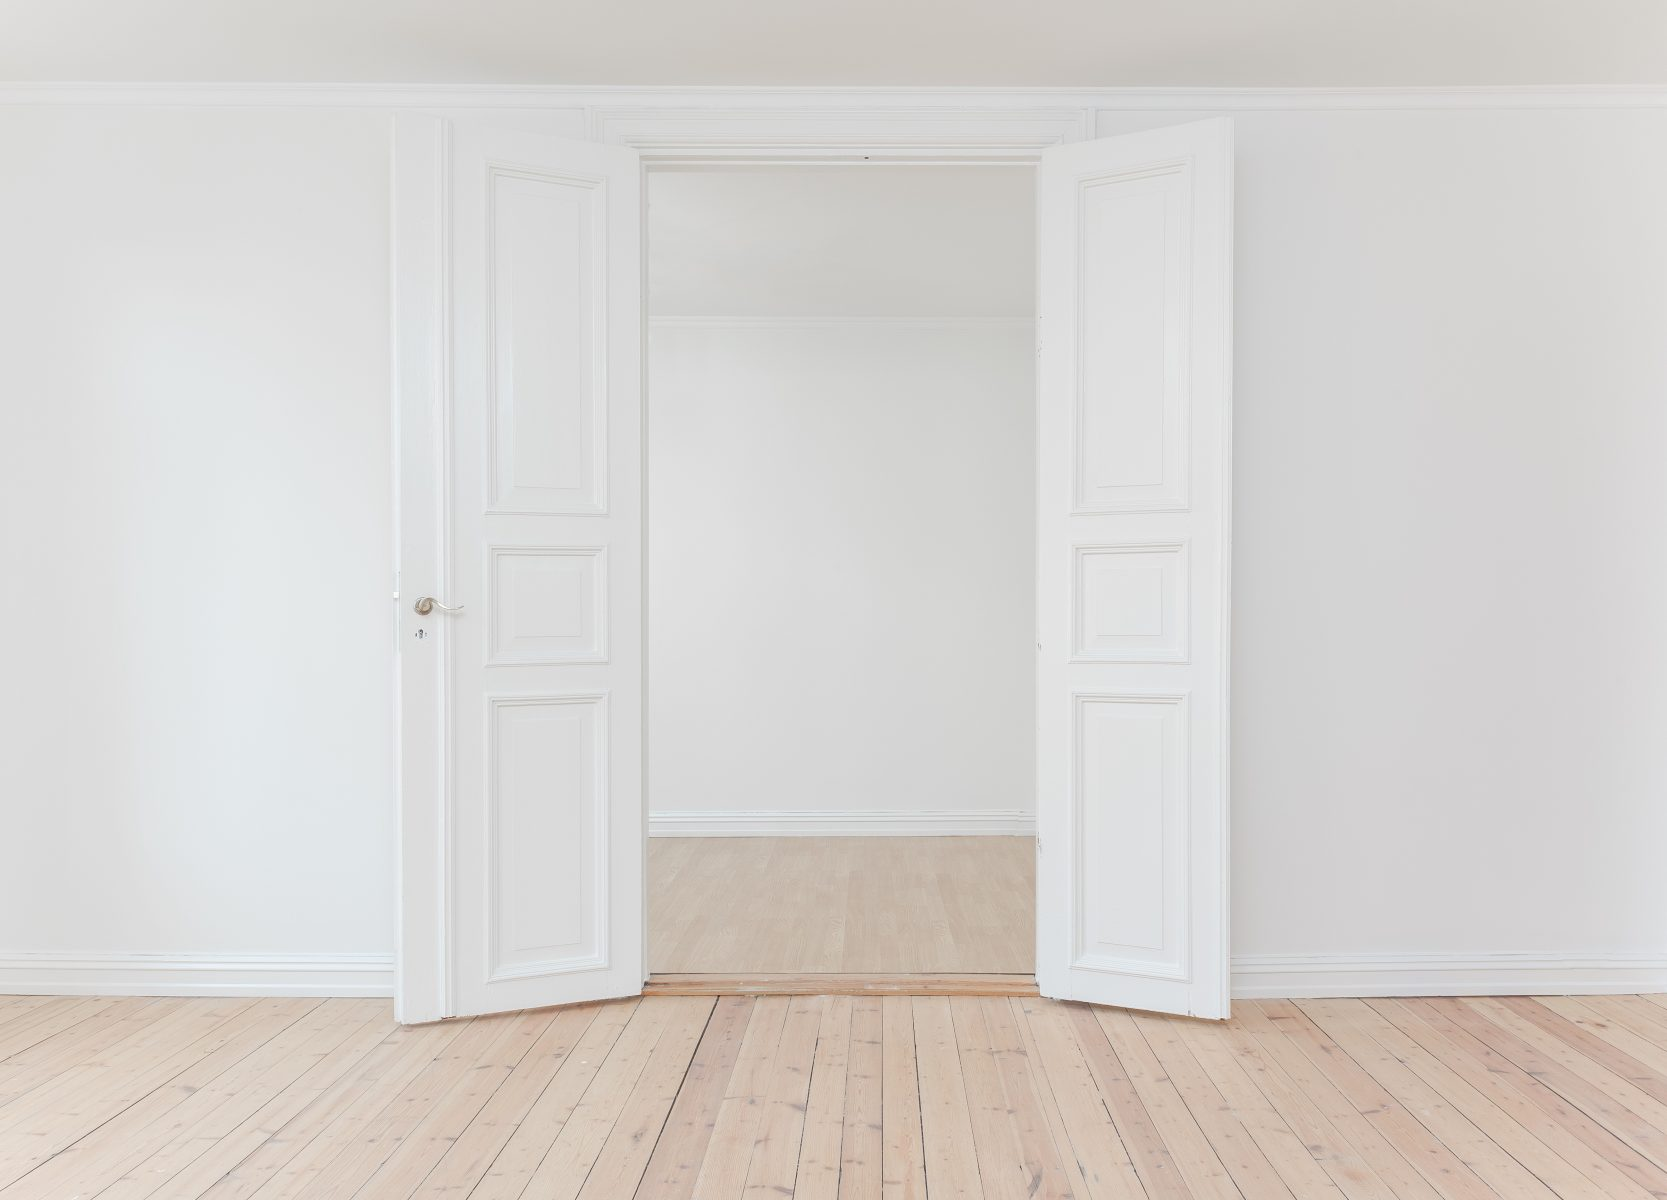 photo of an wide open white door, wood floor and white wall - home renovation tips